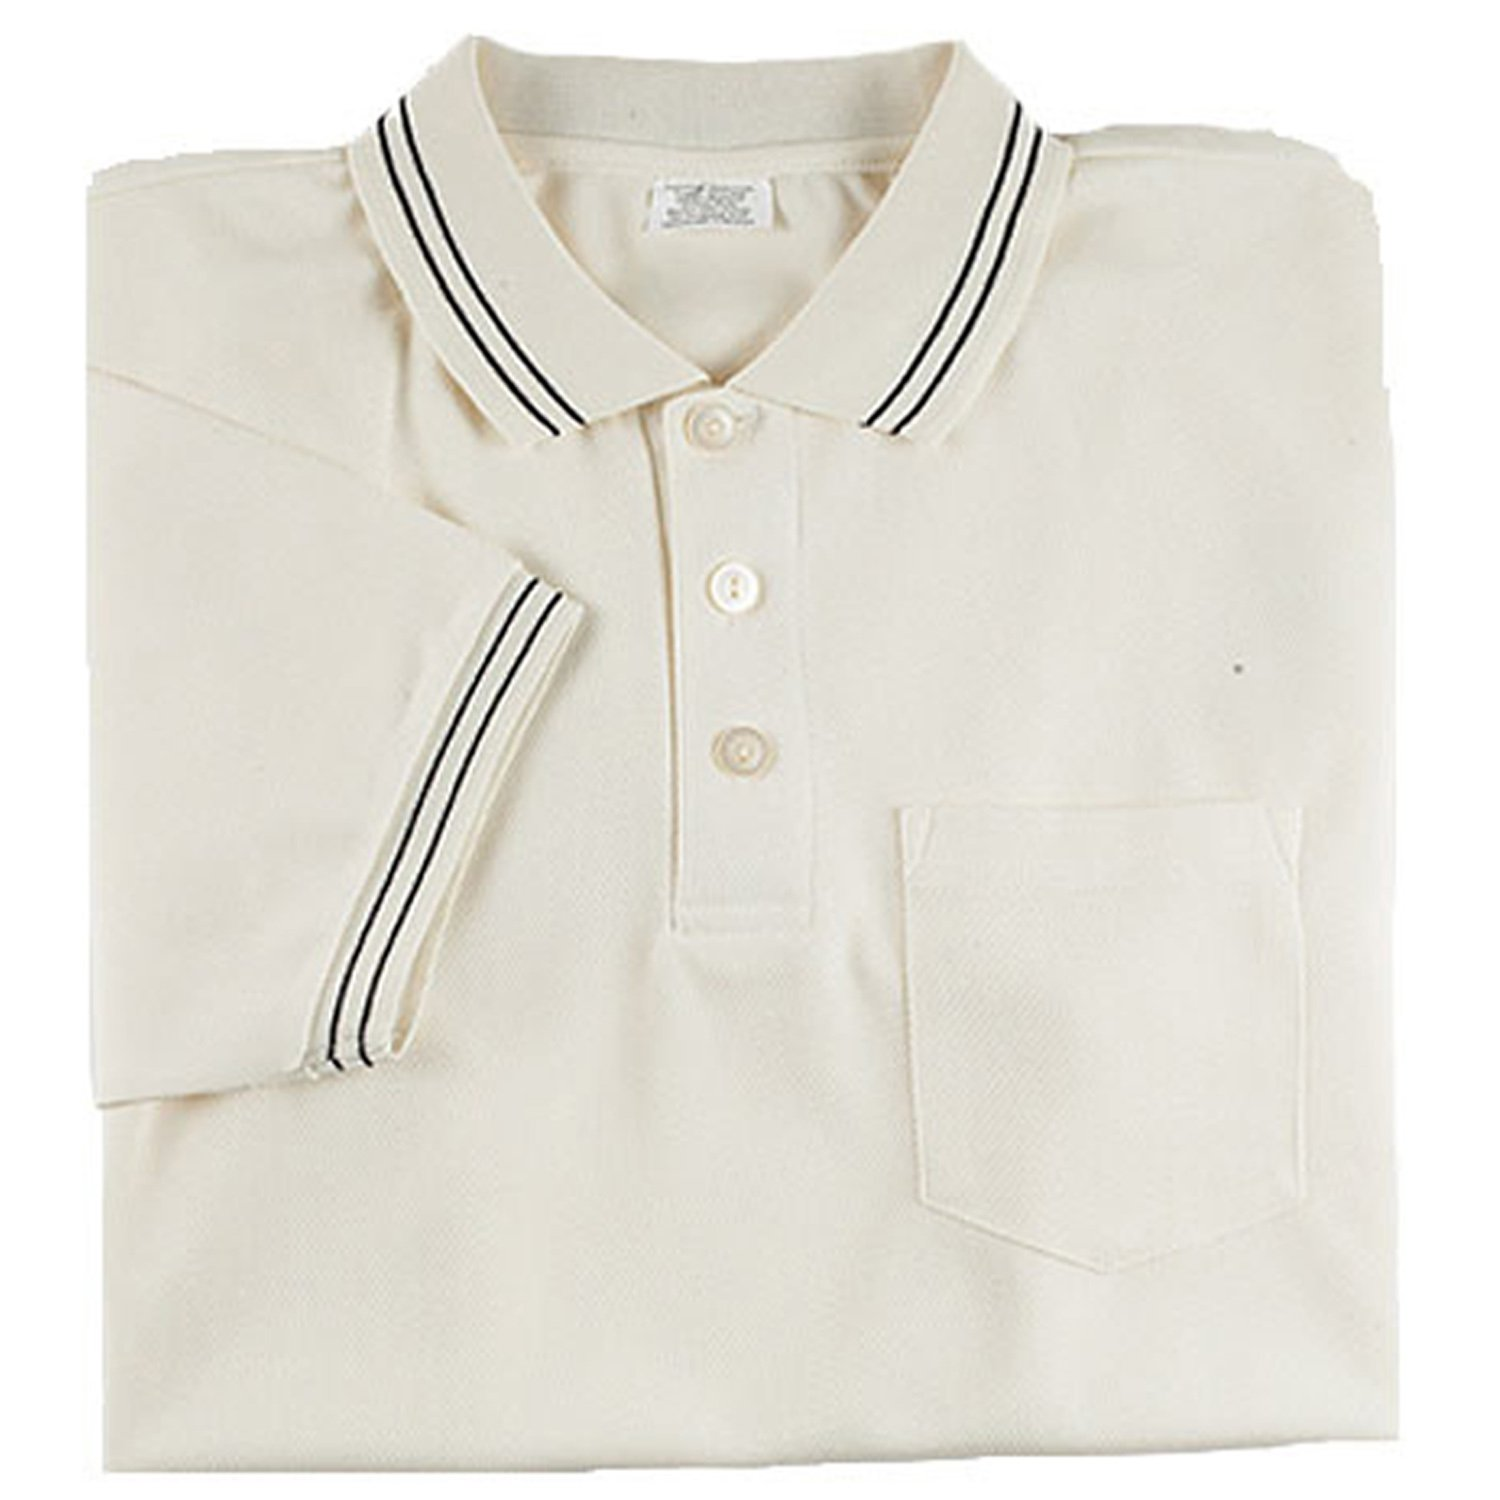 Adams USA Smitty Major League Style Short Sleeve Umpire Shirt with Front Chest Pocket (Cream, 4X-Large)